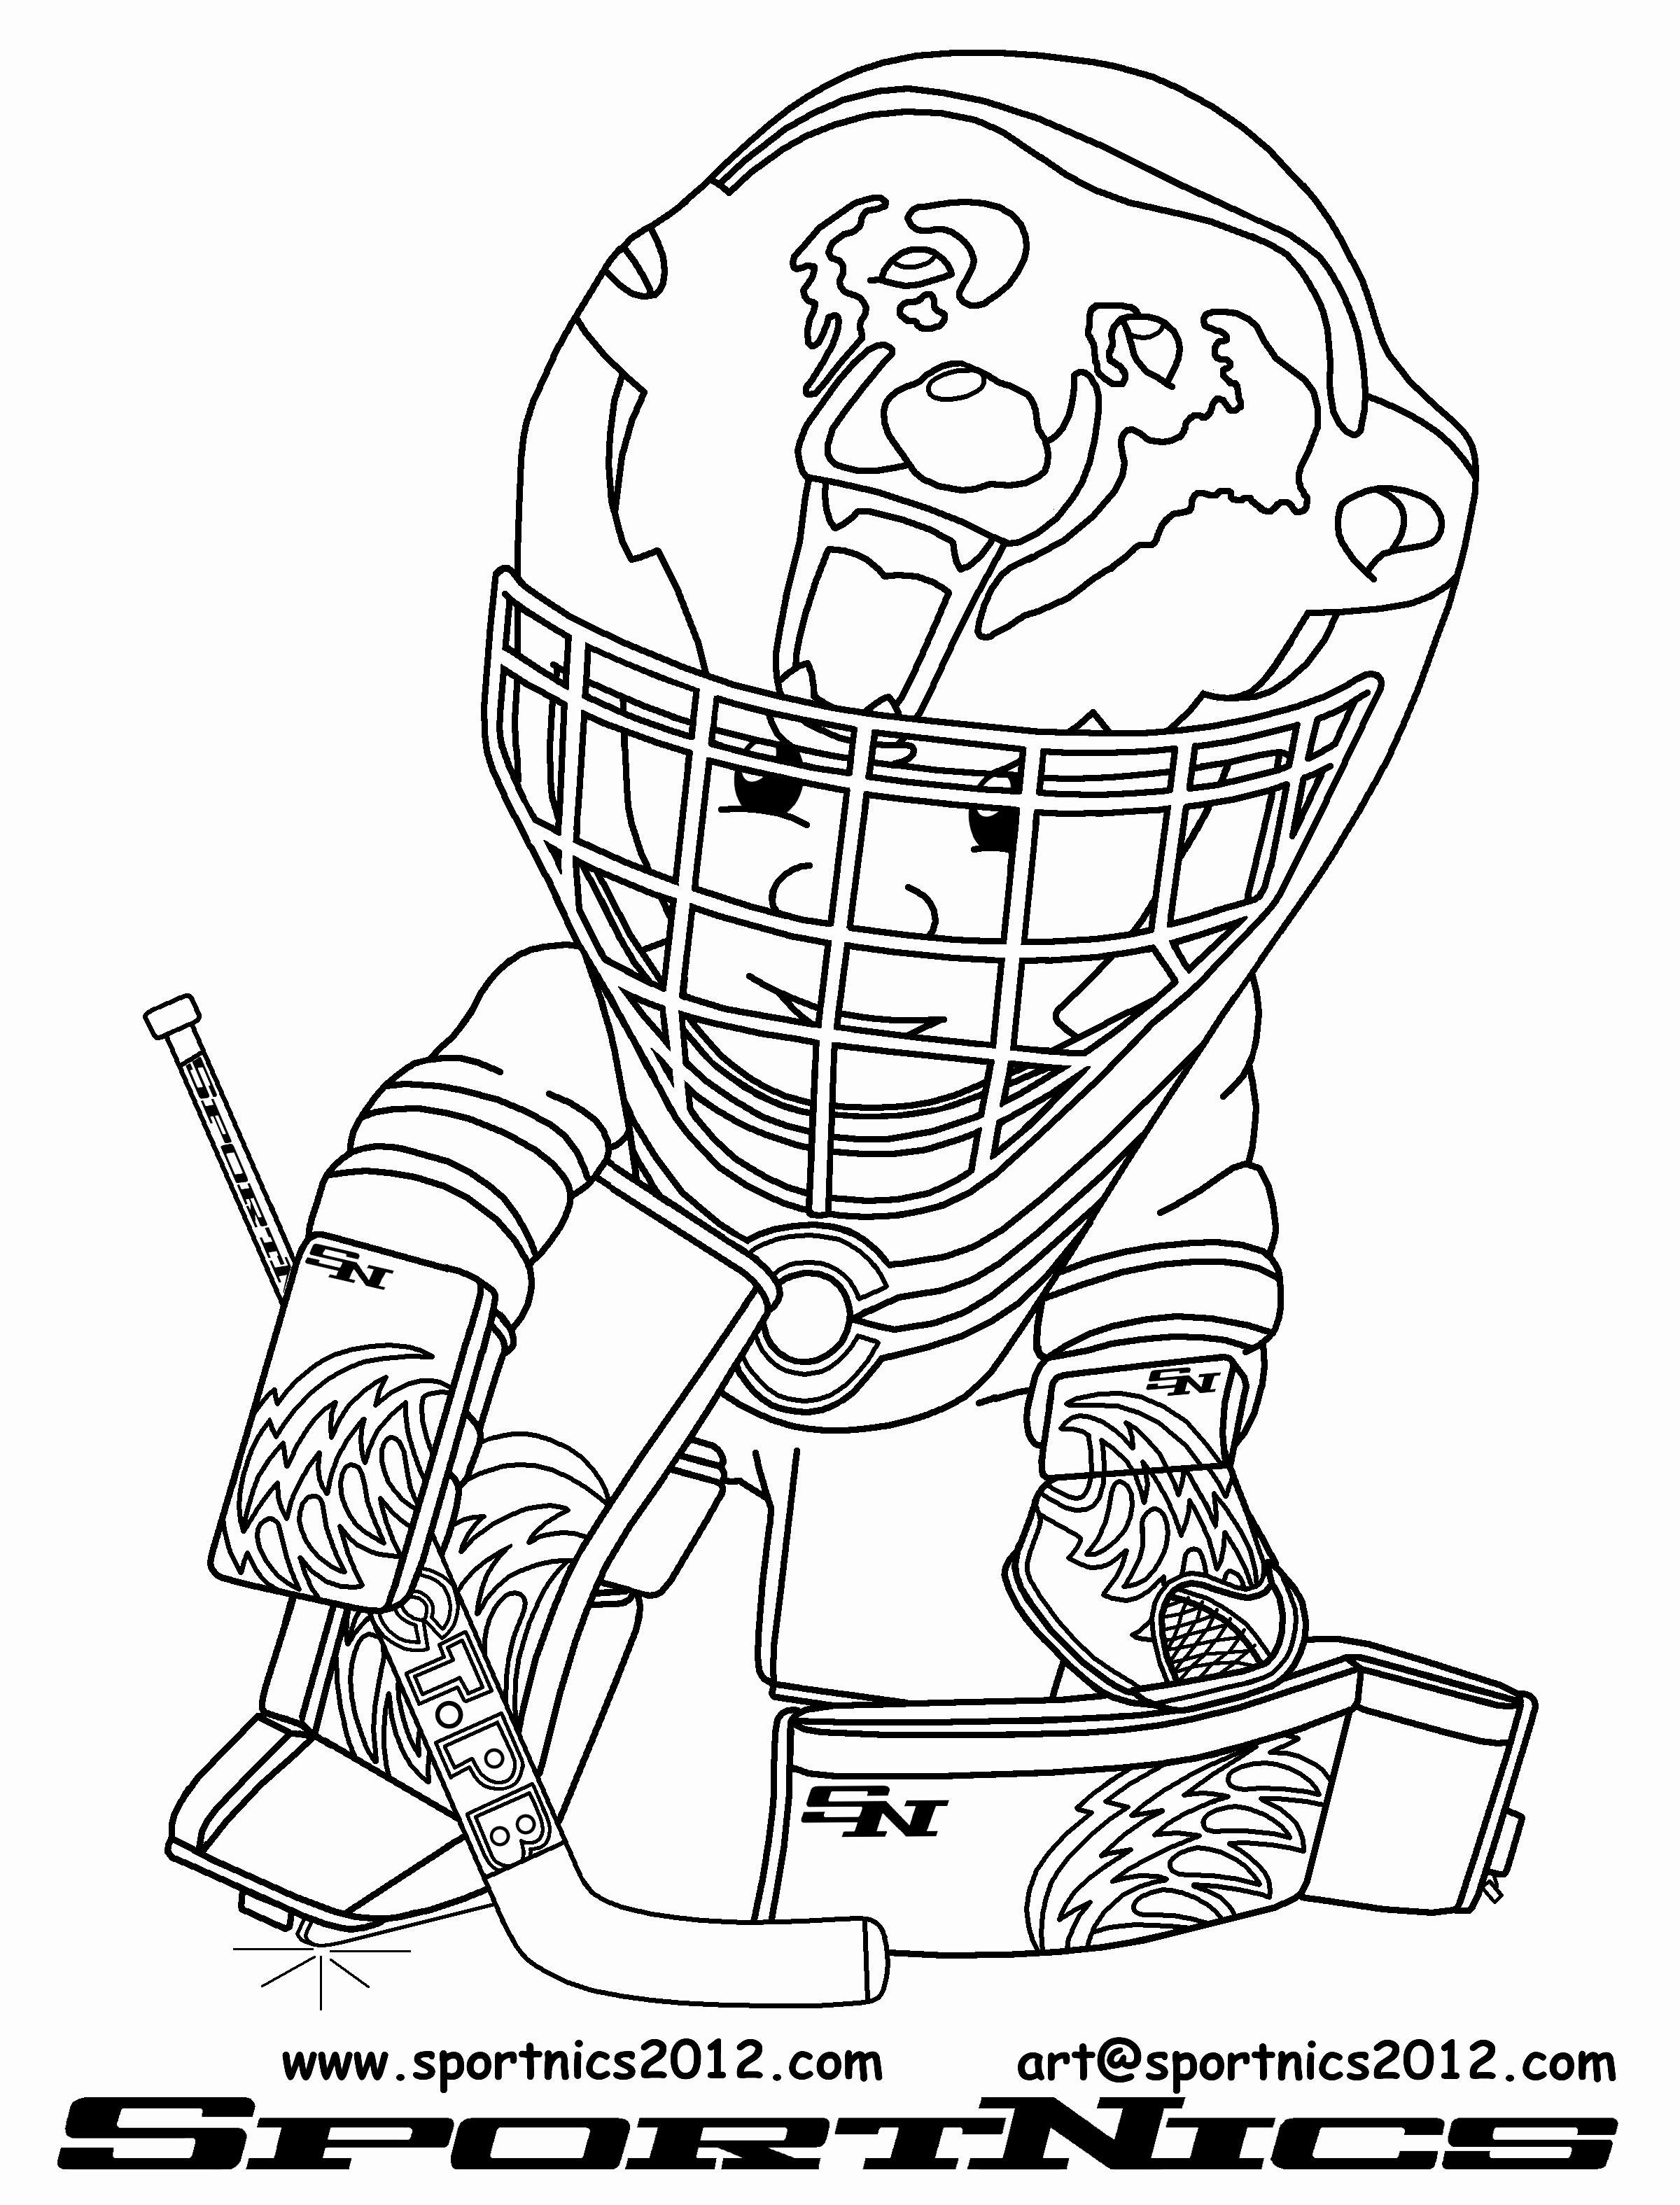 hockey goalie mask coloring pages goalie coloring pages at getcoloringscom free printable goalie hockey pages mask coloring